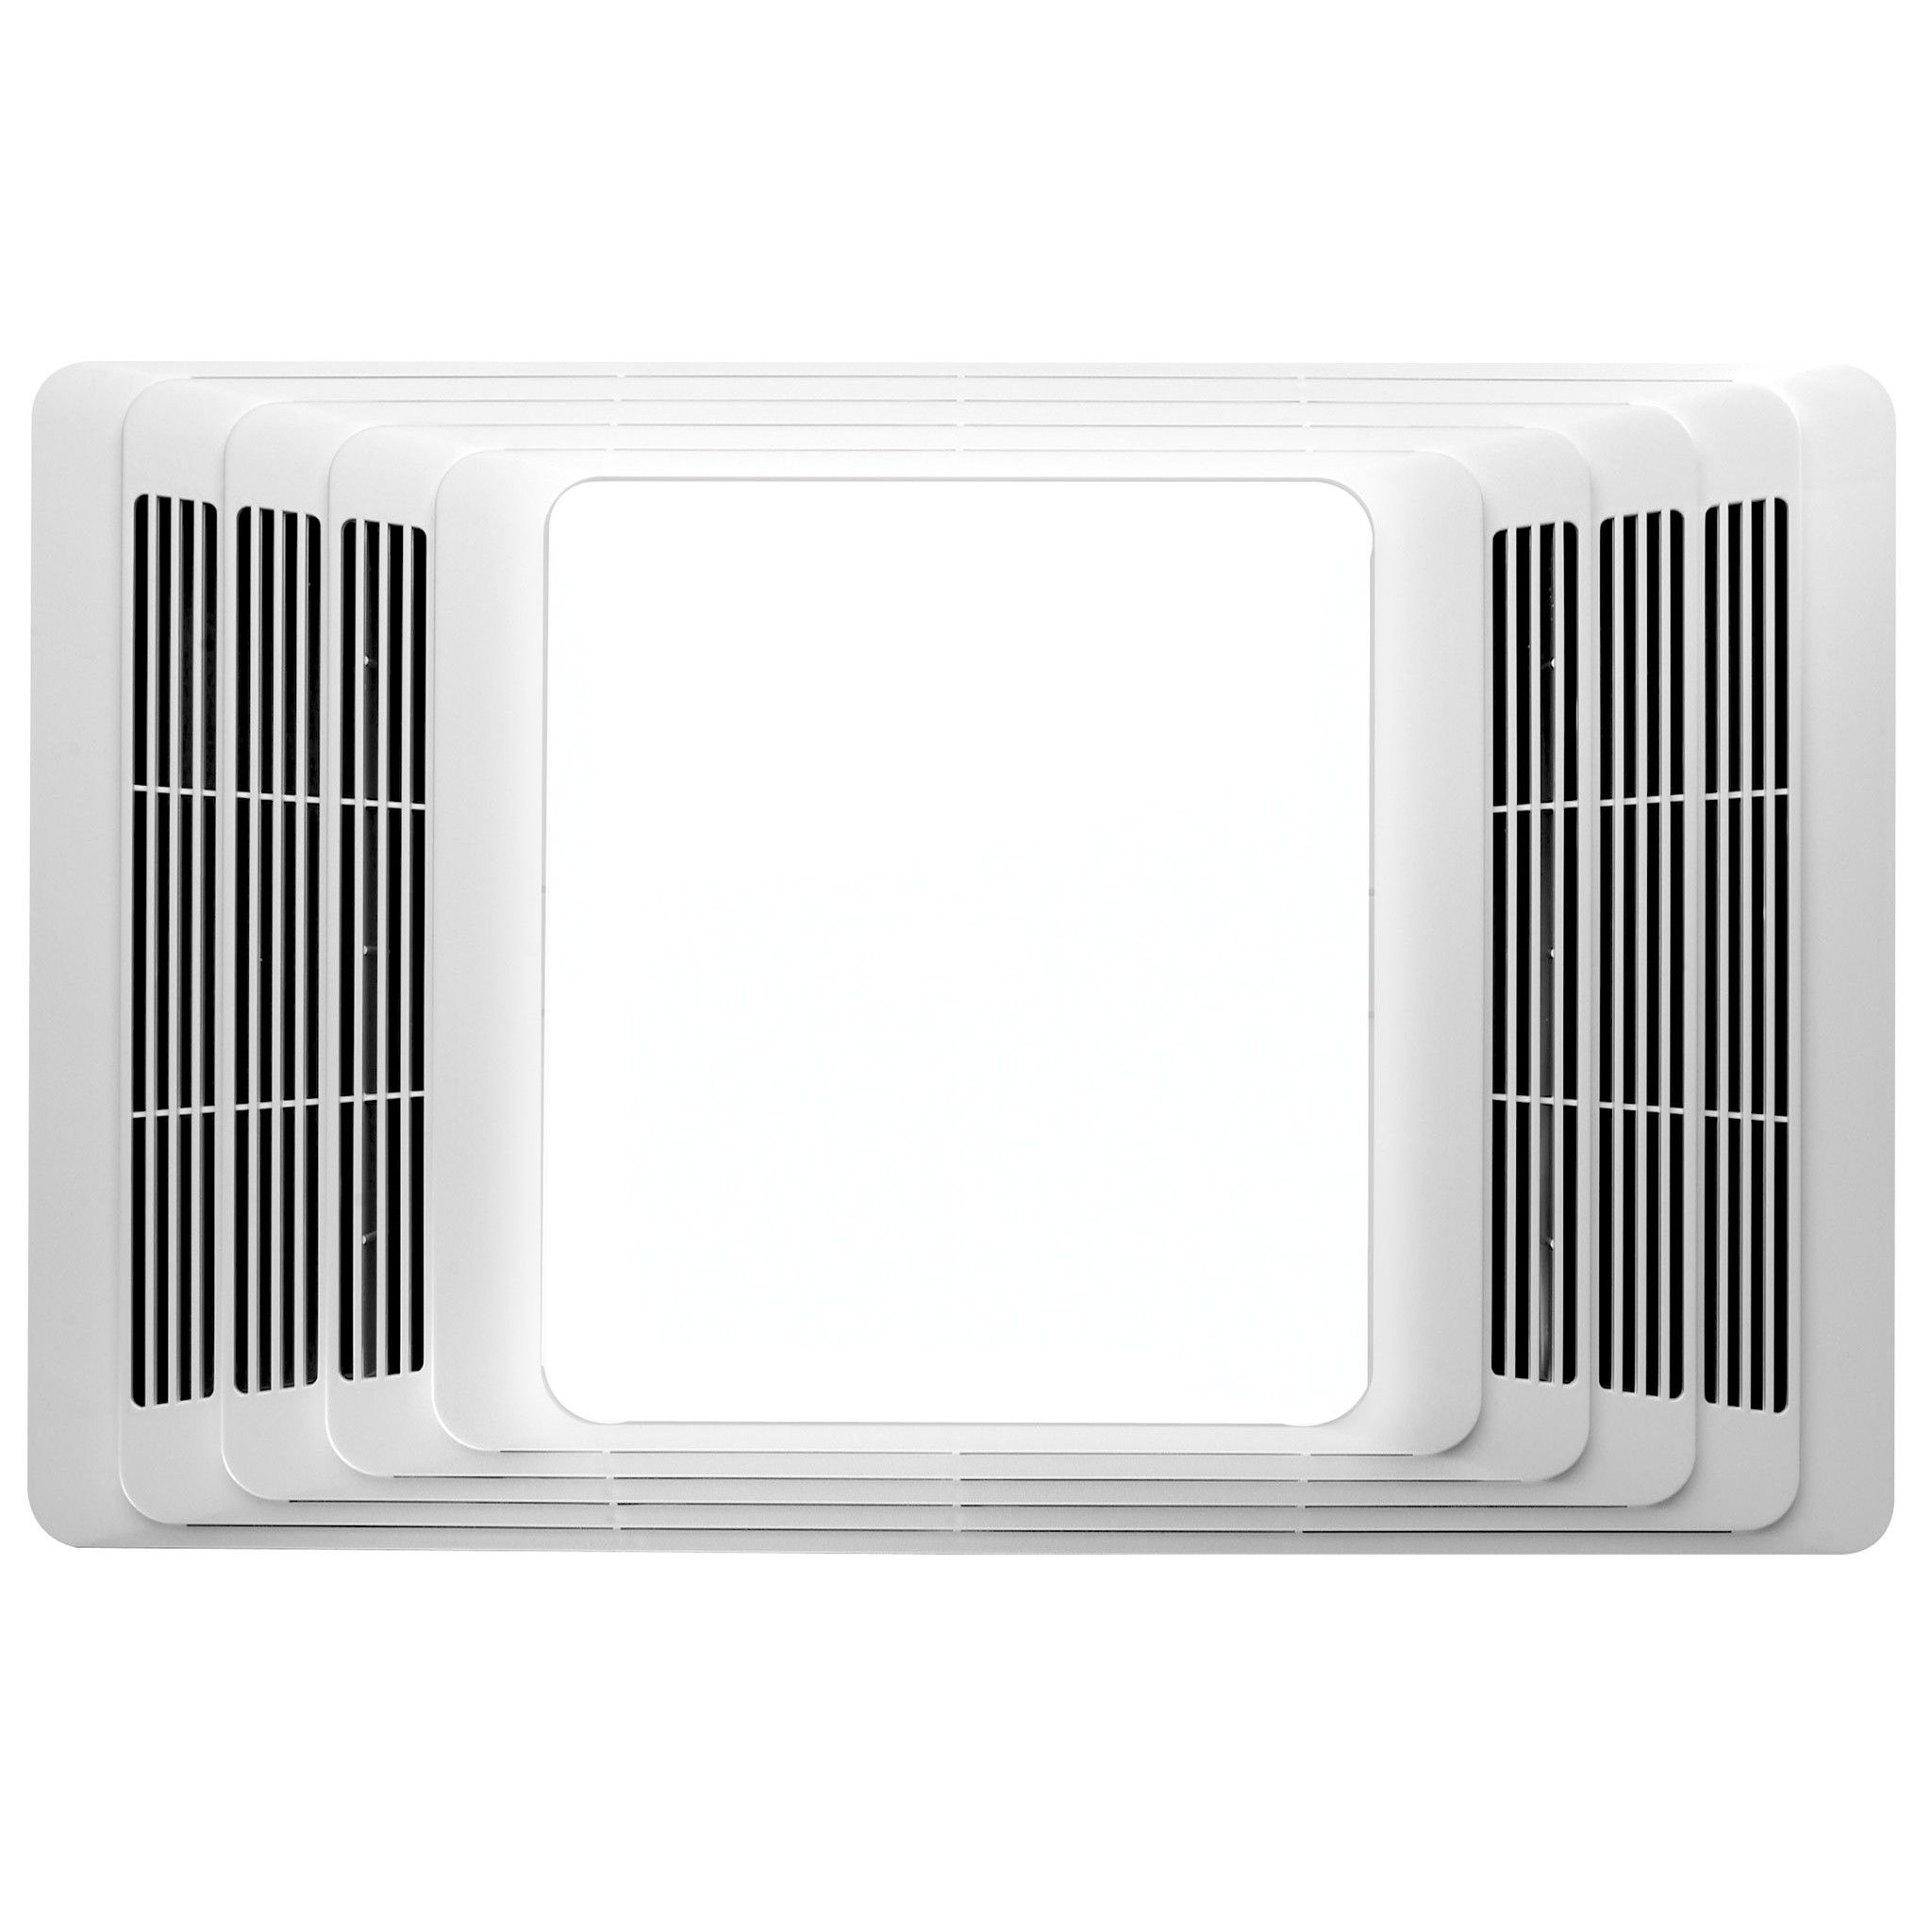 Wondrous Broan 70 Cfm Bathroom Fan And Heater With Light U0026 Beutiful Home Inspiration Cosmmahrainfo